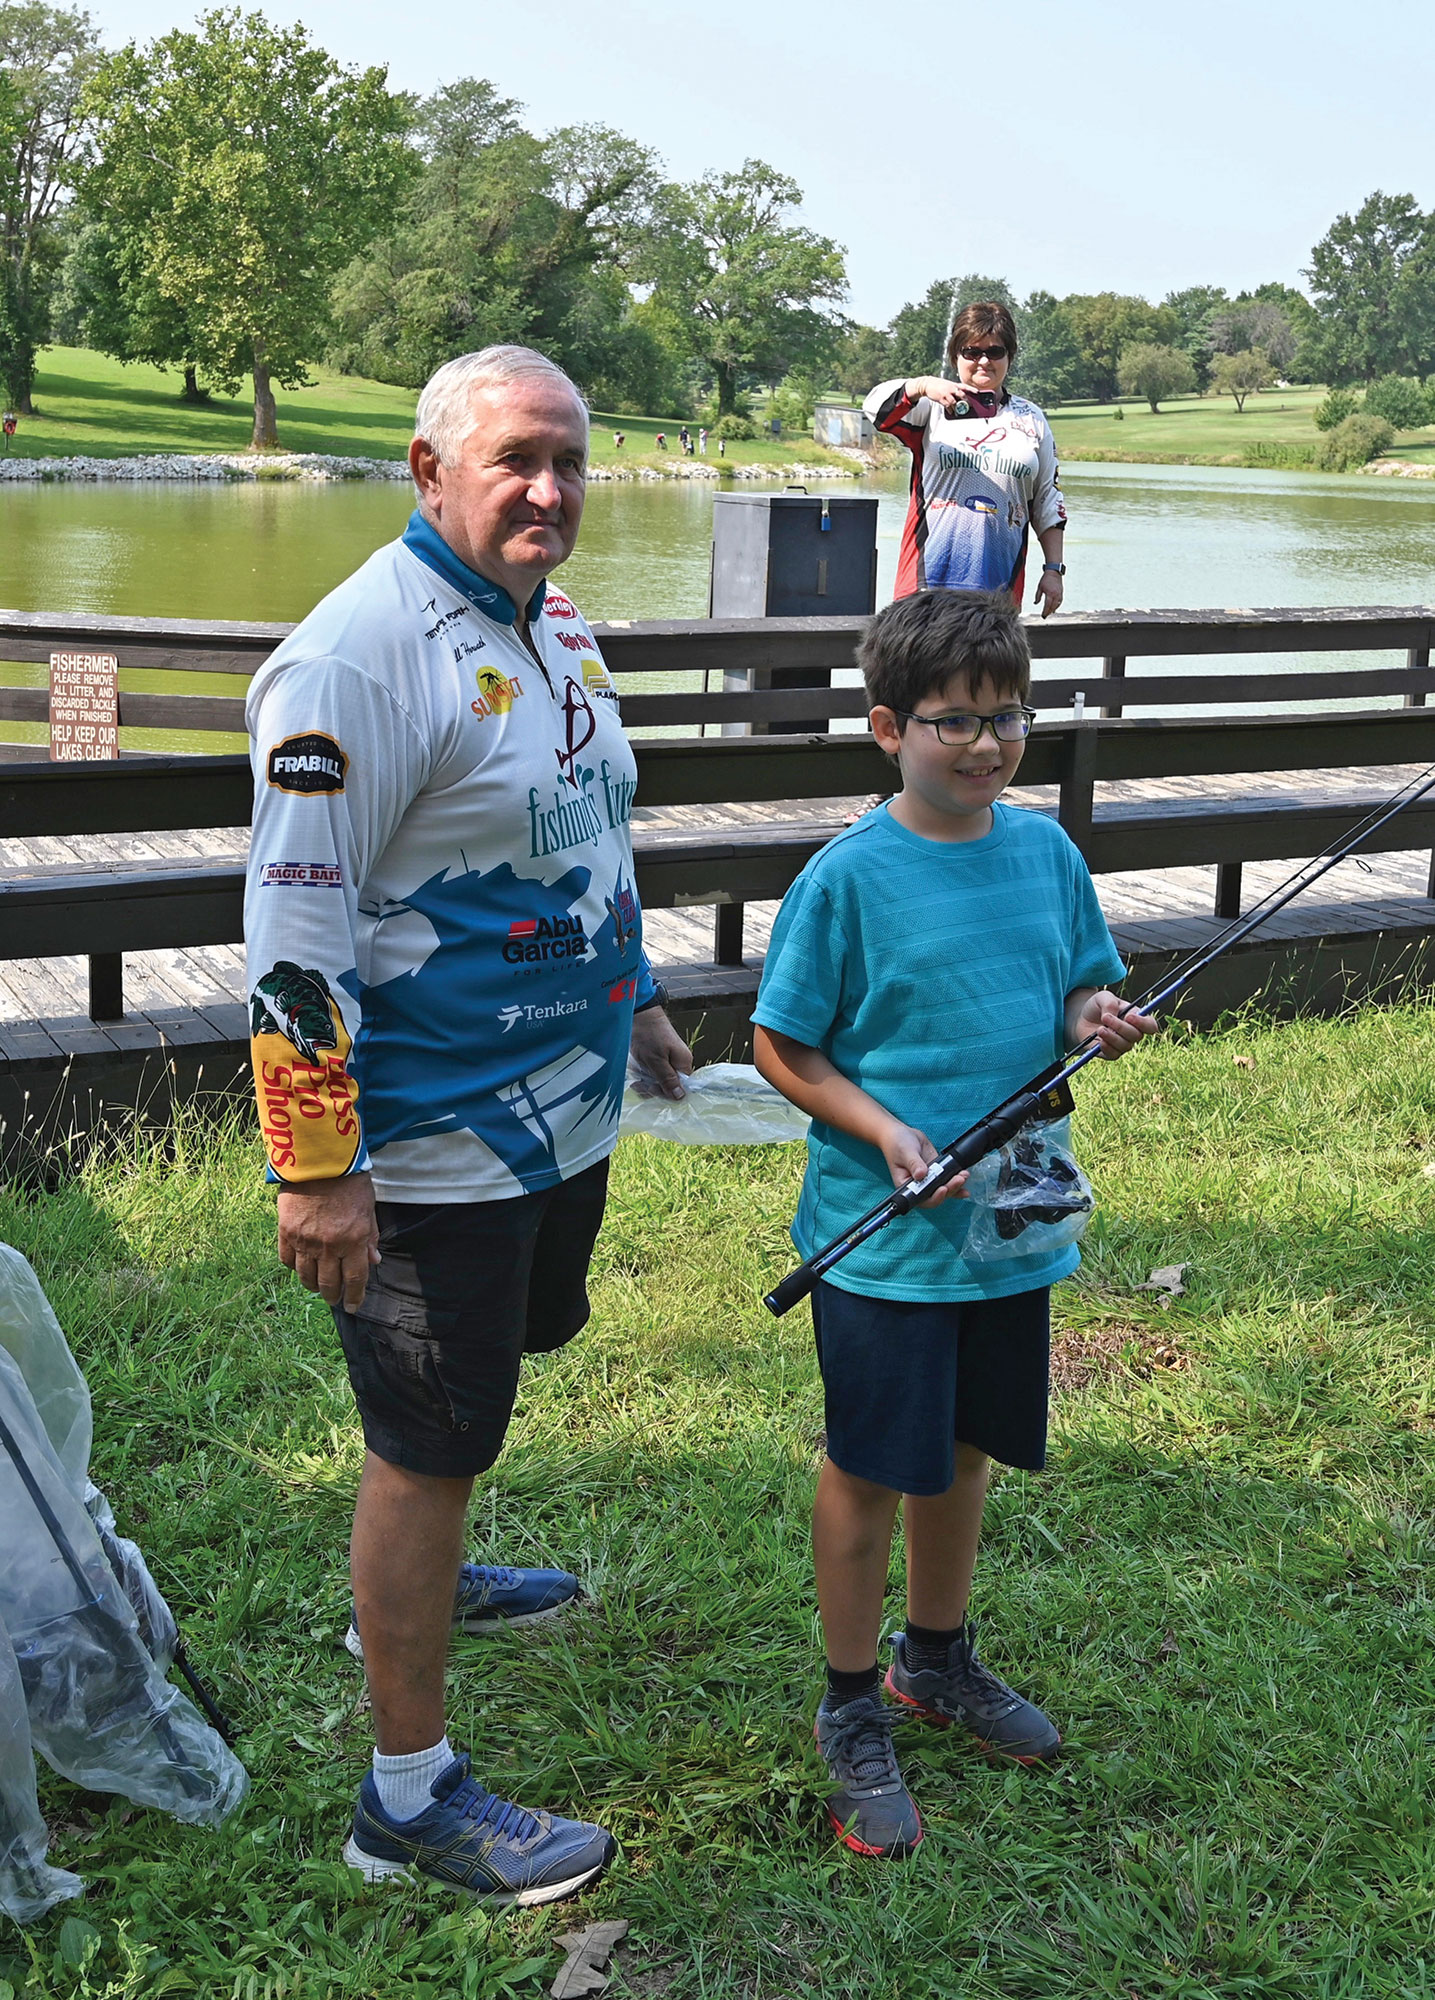 Bill Horvath, an instructor with Fishing's Future, presents 10-year-old Aleksander Ninov with a new rod and reel combo as the first place winner in the Male Youth division (under 16 years old) at the International Family Fishing Derby Sept. 11 at Merritt Lake. Aleksandar's father, Maj. Vladimir Ninov, is an international military student from Bulgaria enrolled in the Command and General Staff Officers Course Class of 2022.